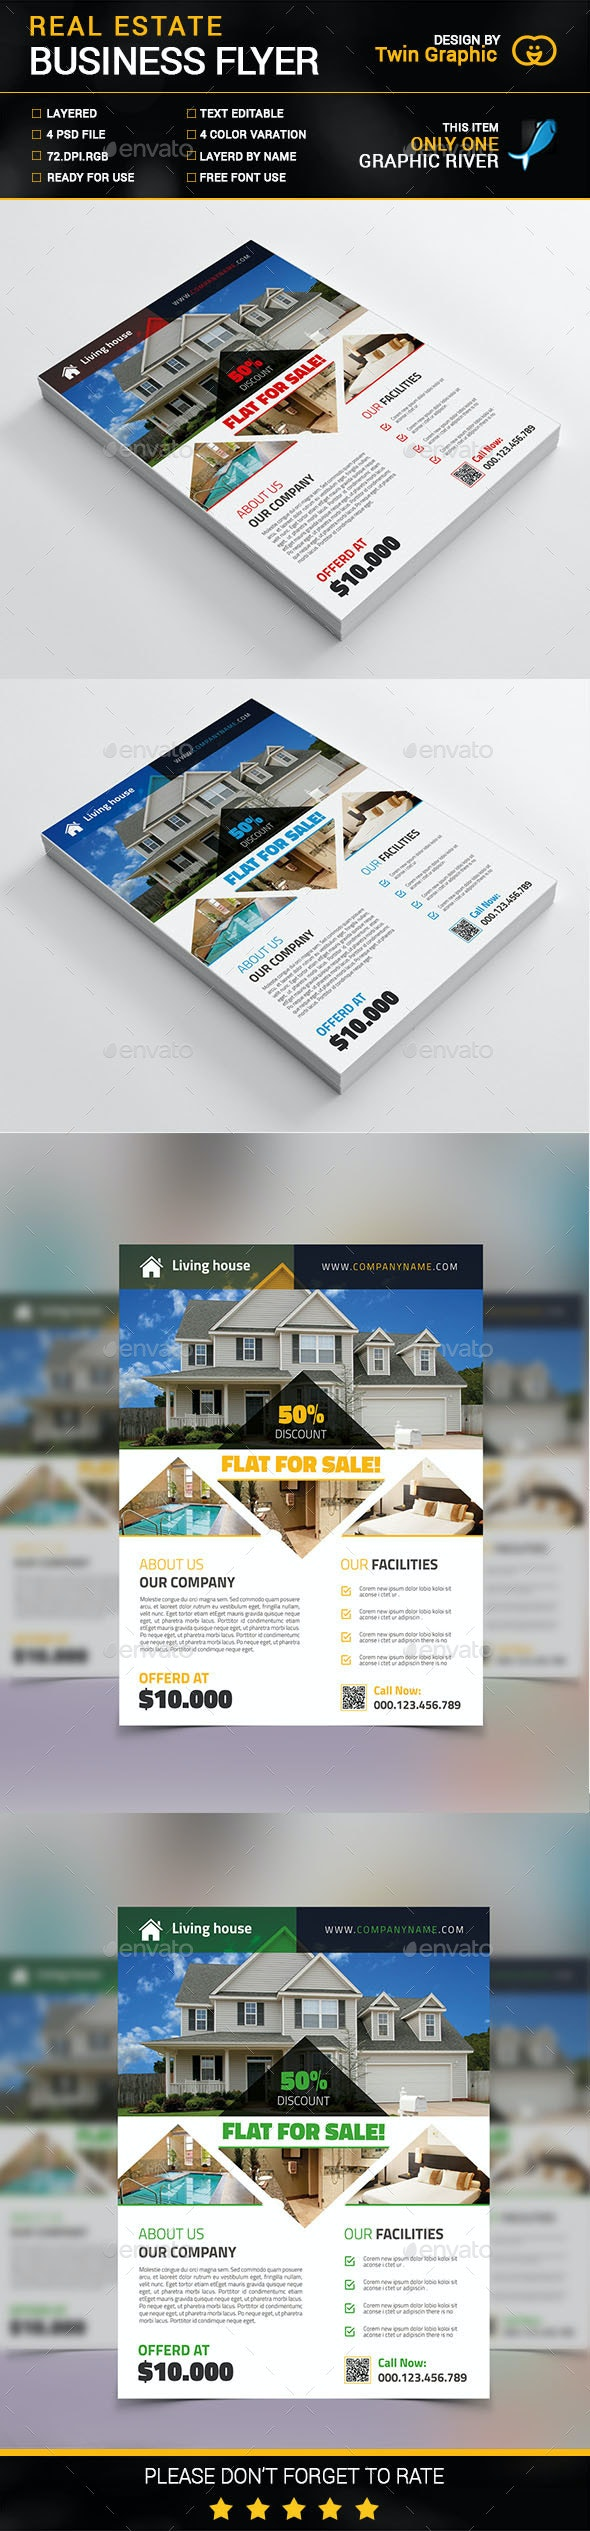 Real Estate business flyer design. - Flyers Print Templates